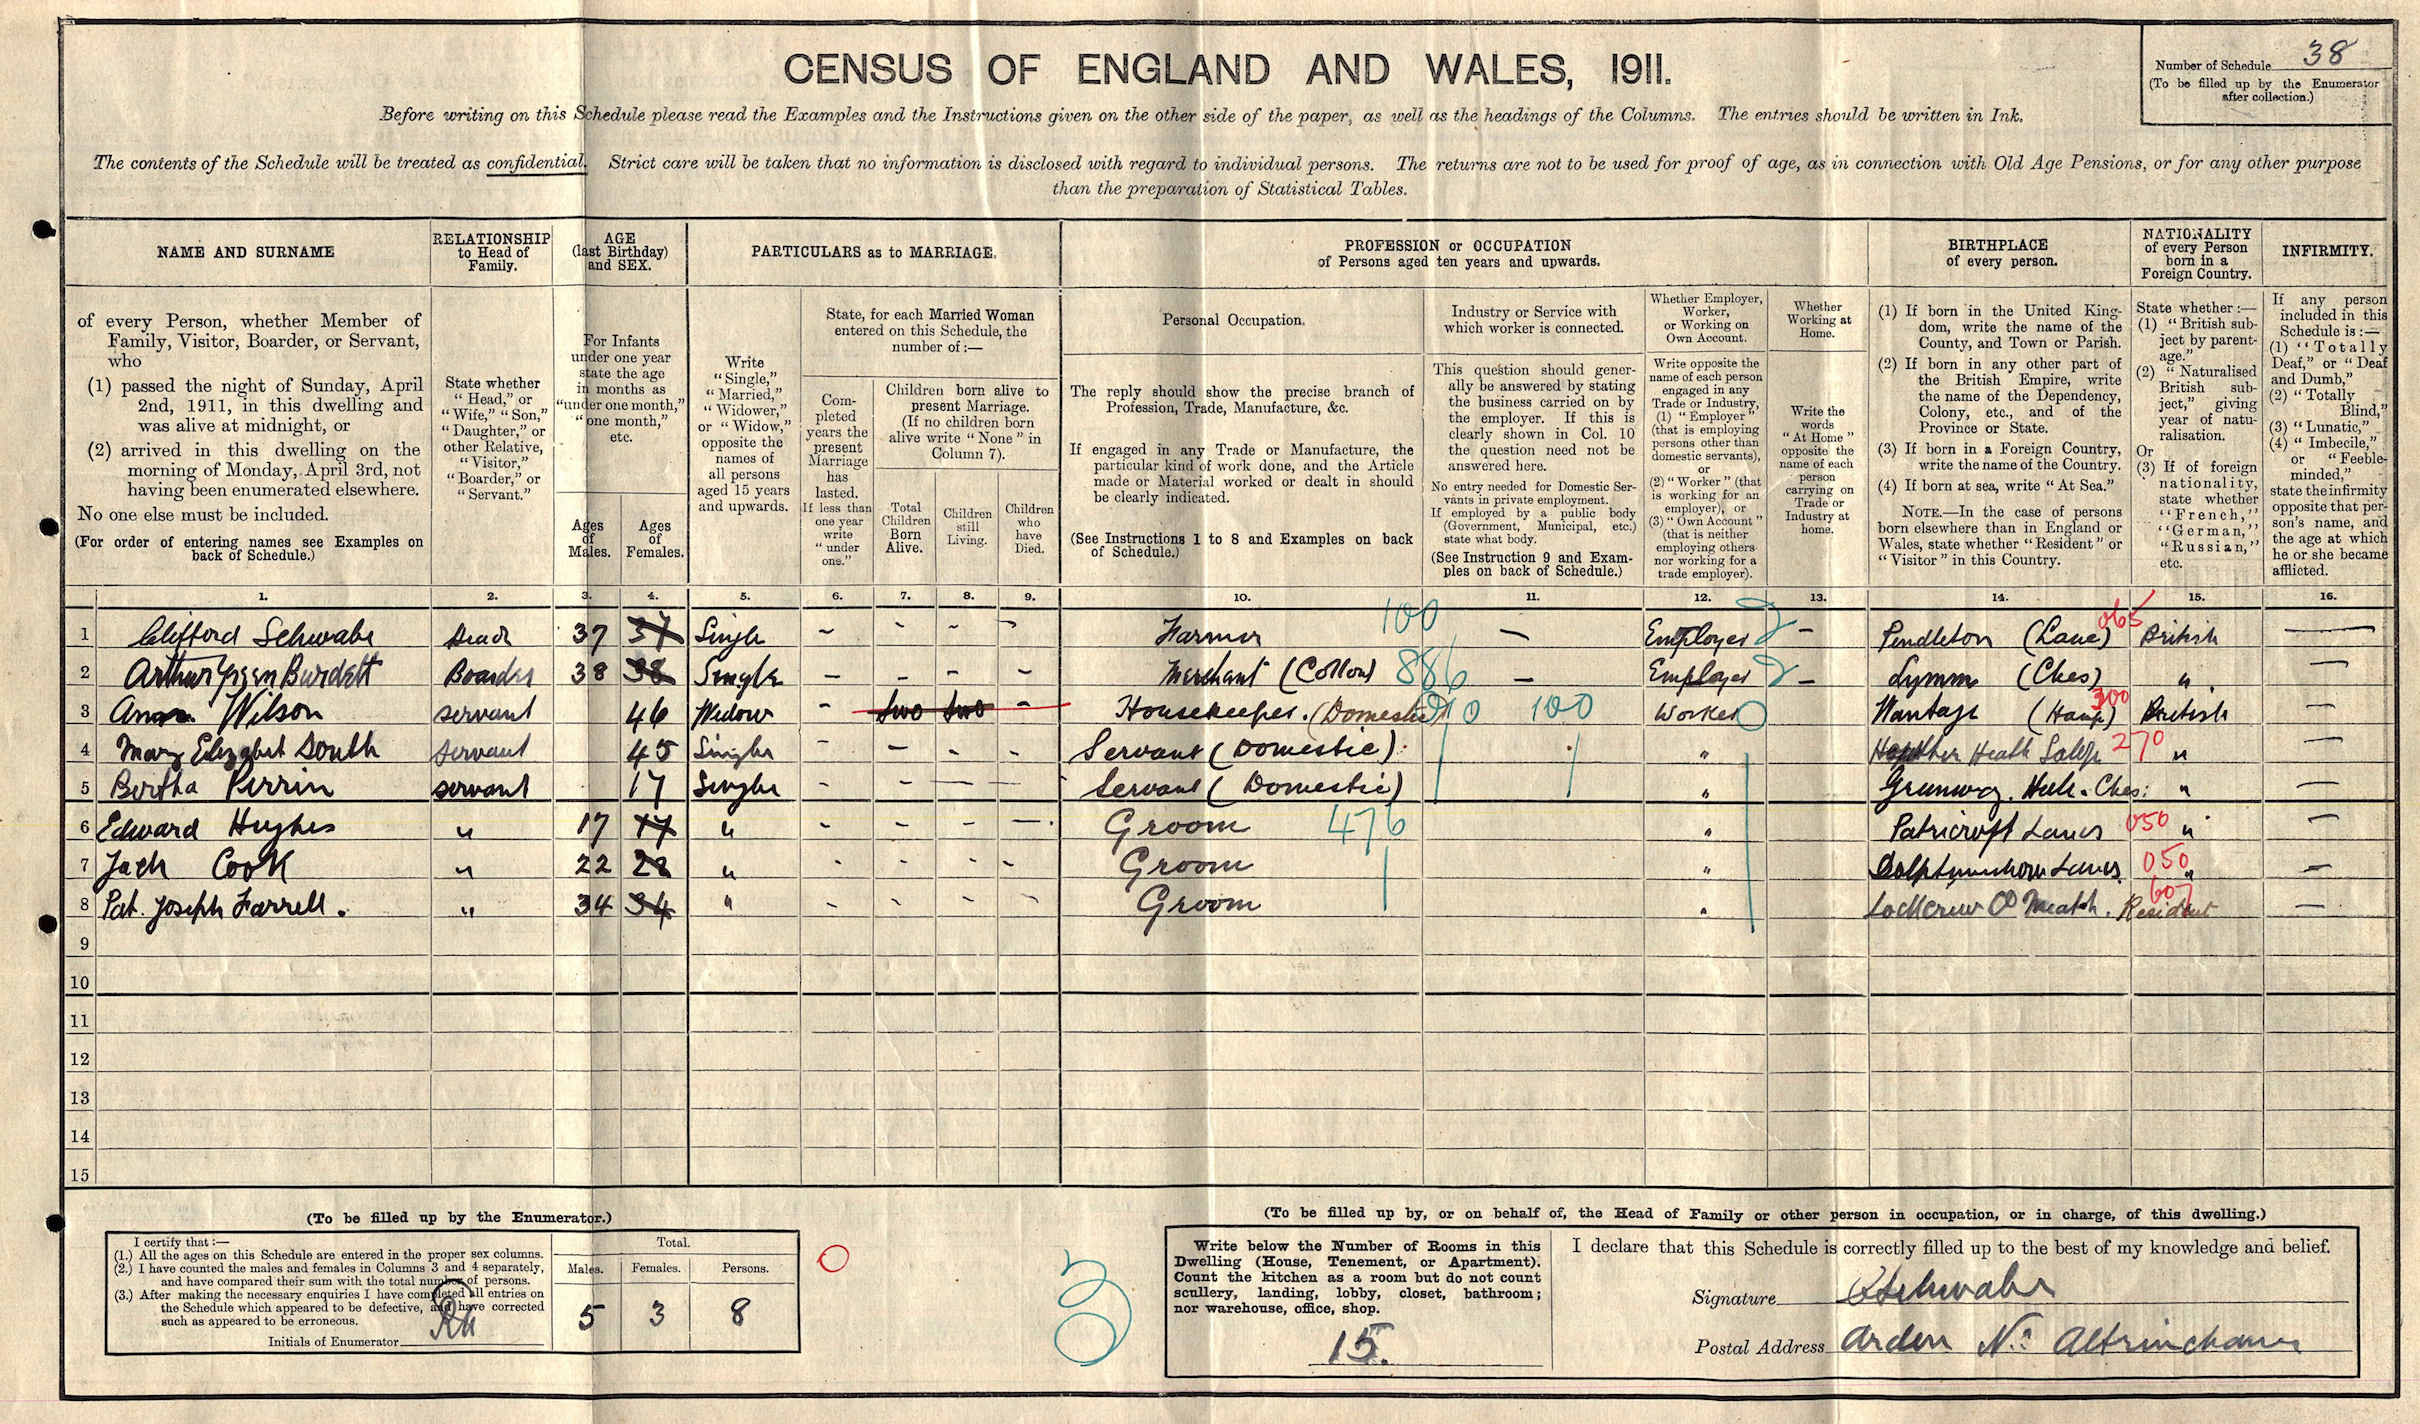 Arthur Green Burdett and Clifford Schwabe on 1911 census